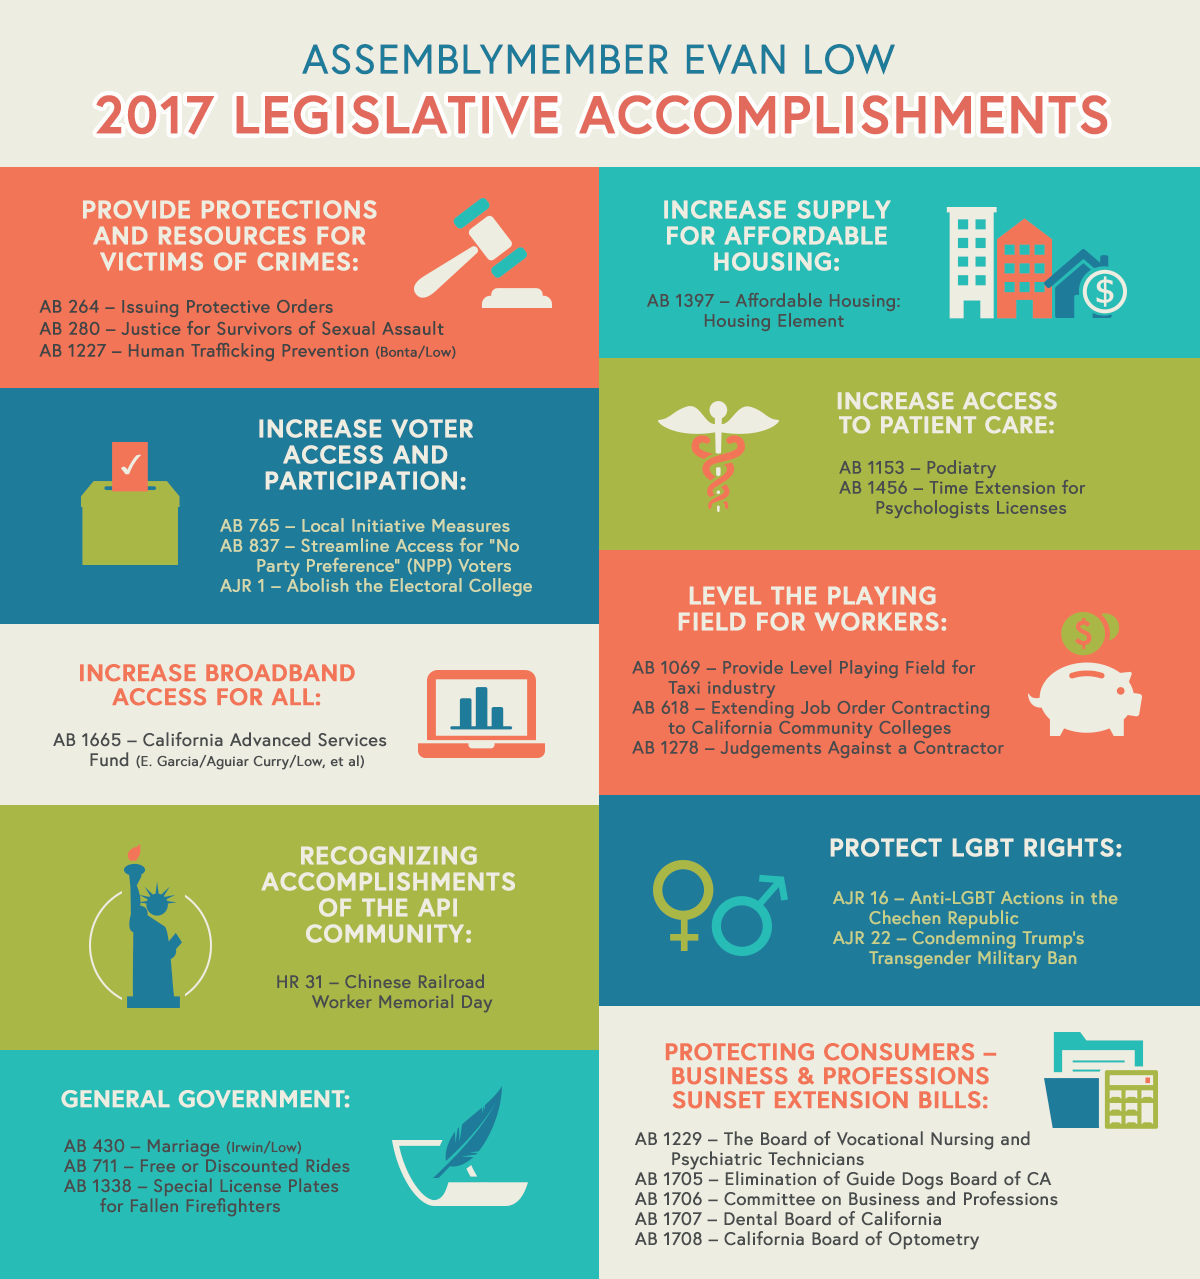 2017 Legislative Accomplishments